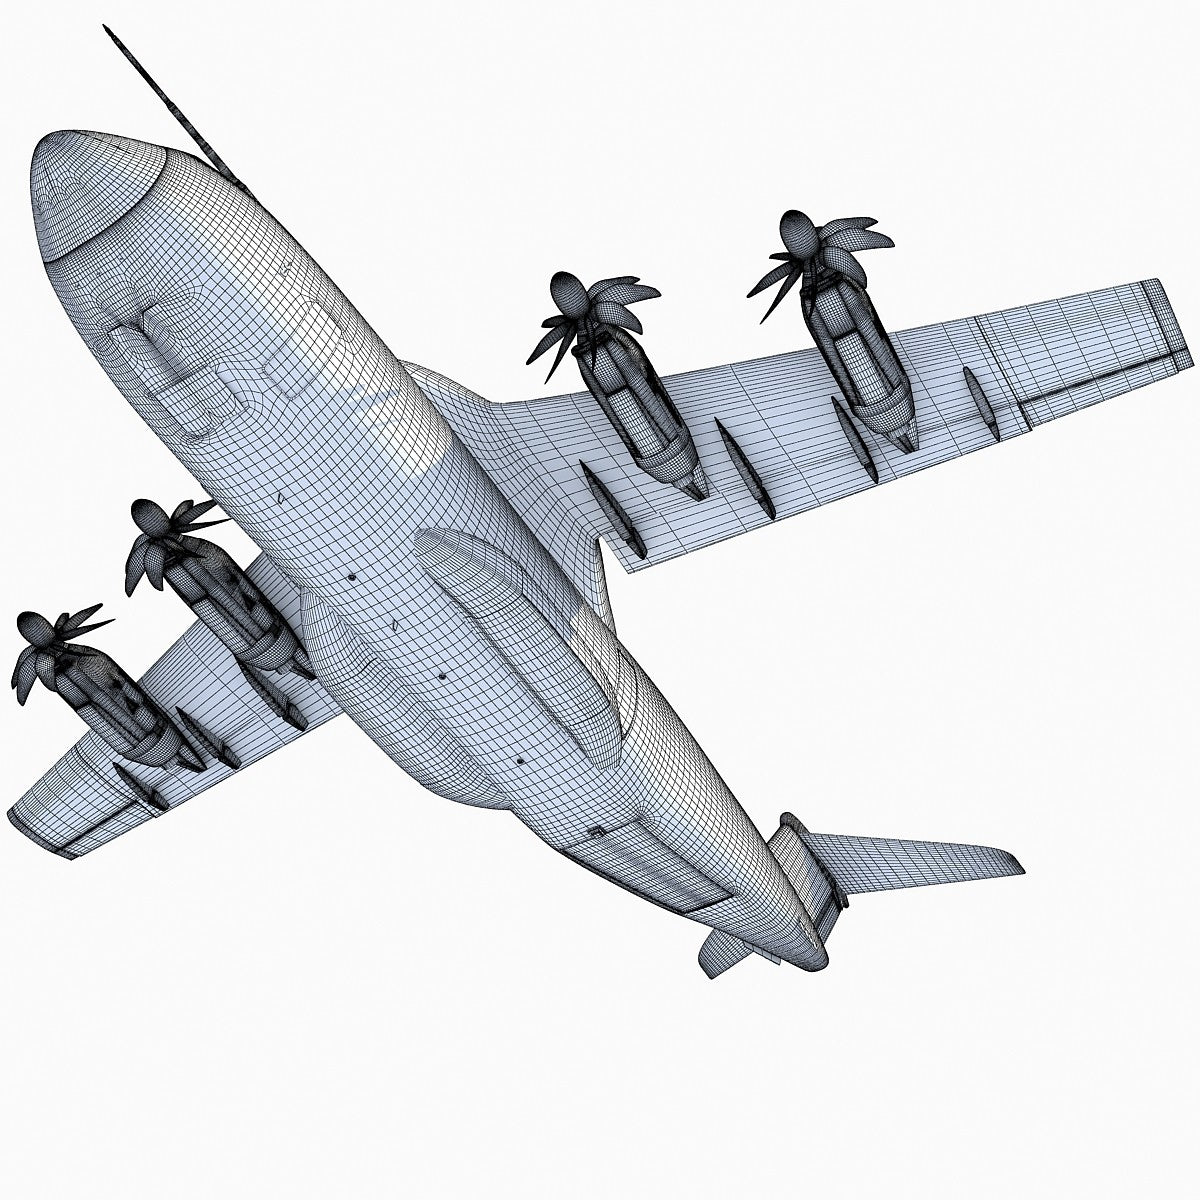 Airbus A400M Atlas 3D Model